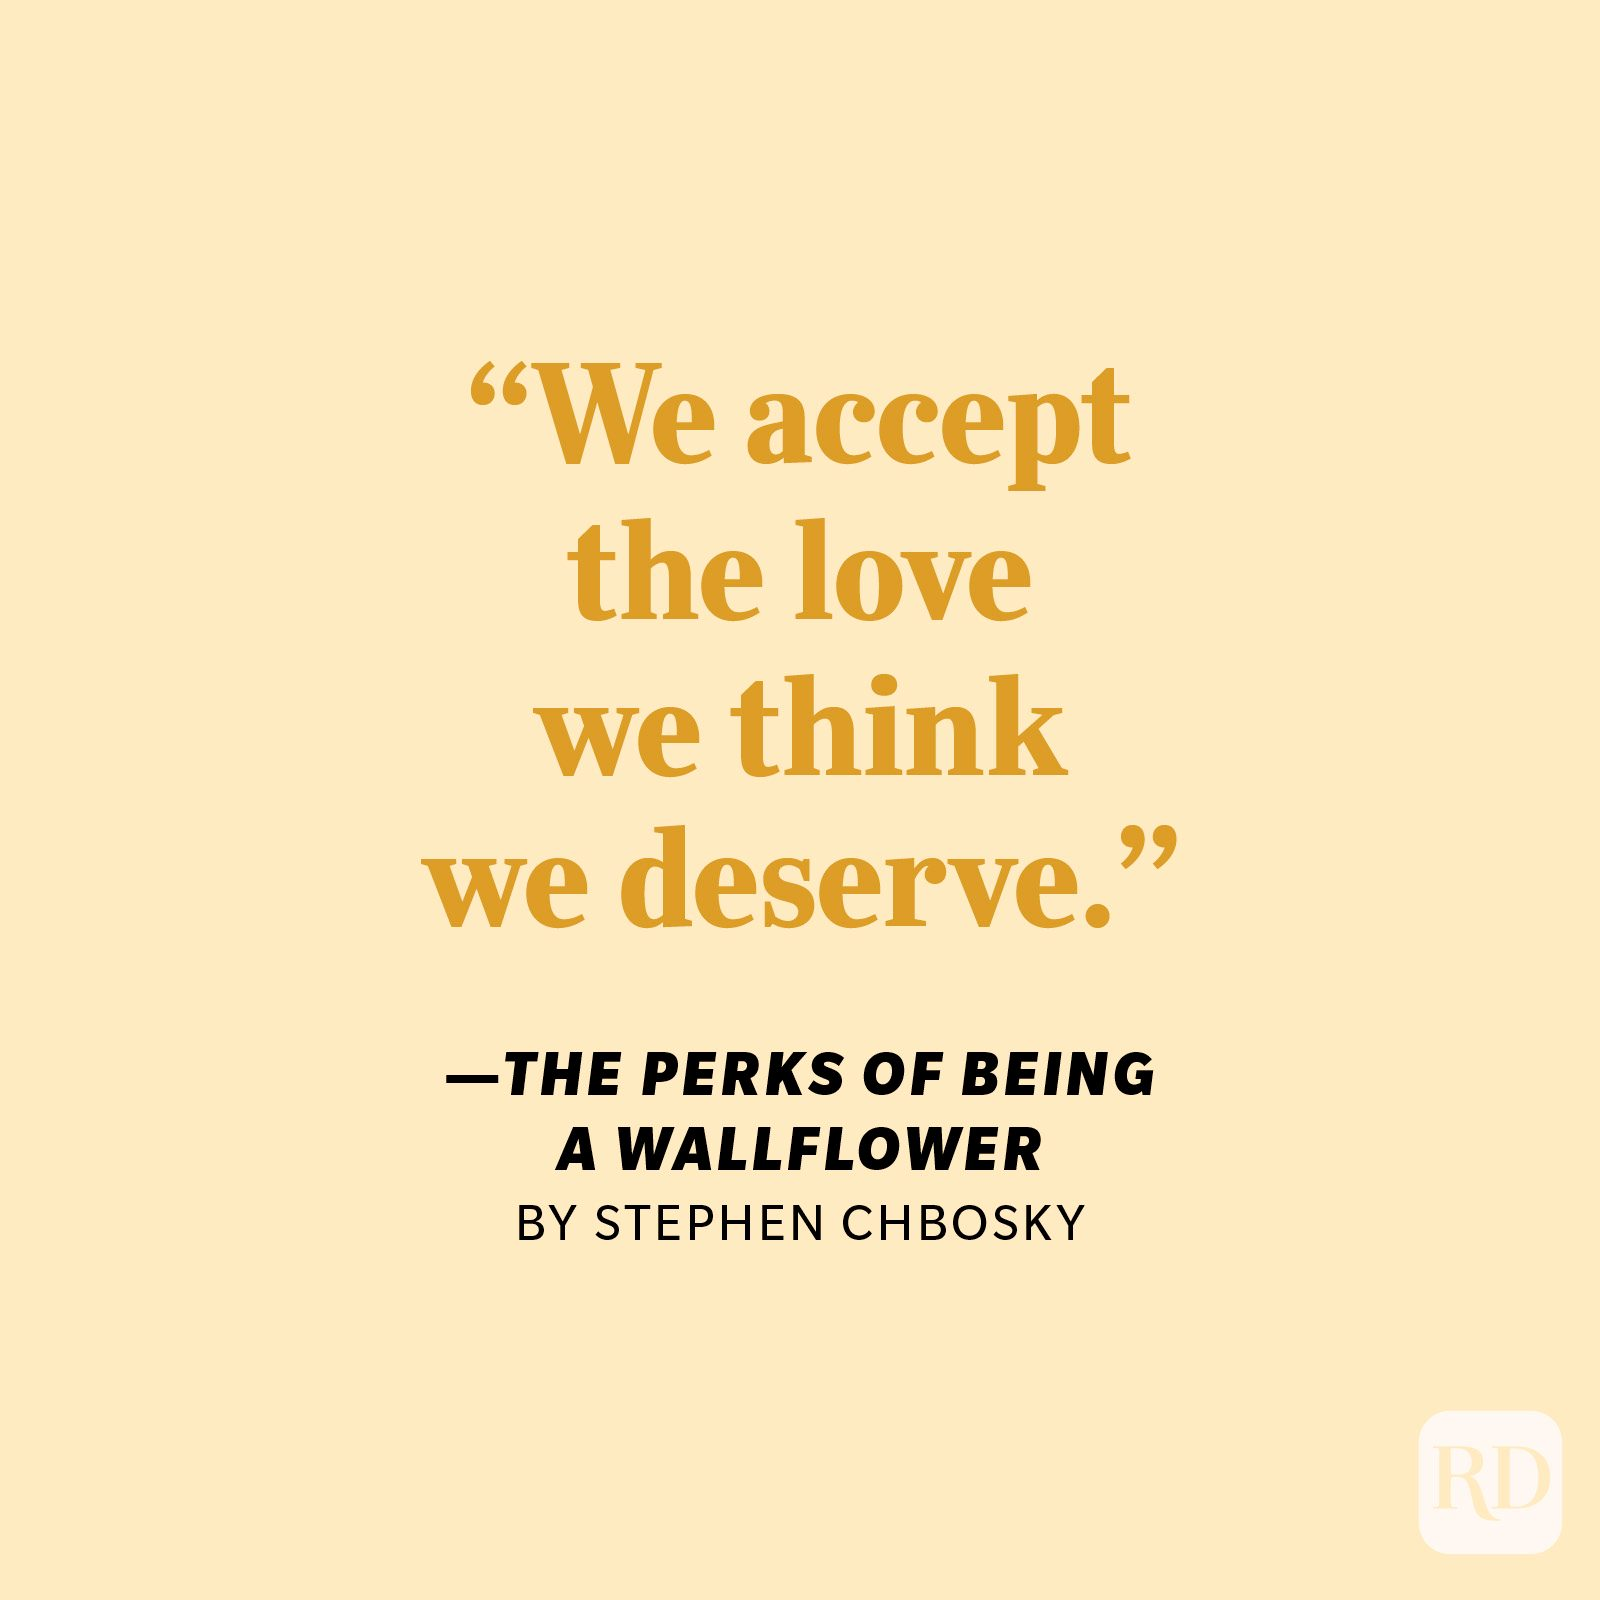 """The Perks of Being a Wallflower by Stephen Chbosky """"We accept the love we think we deserve."""""""